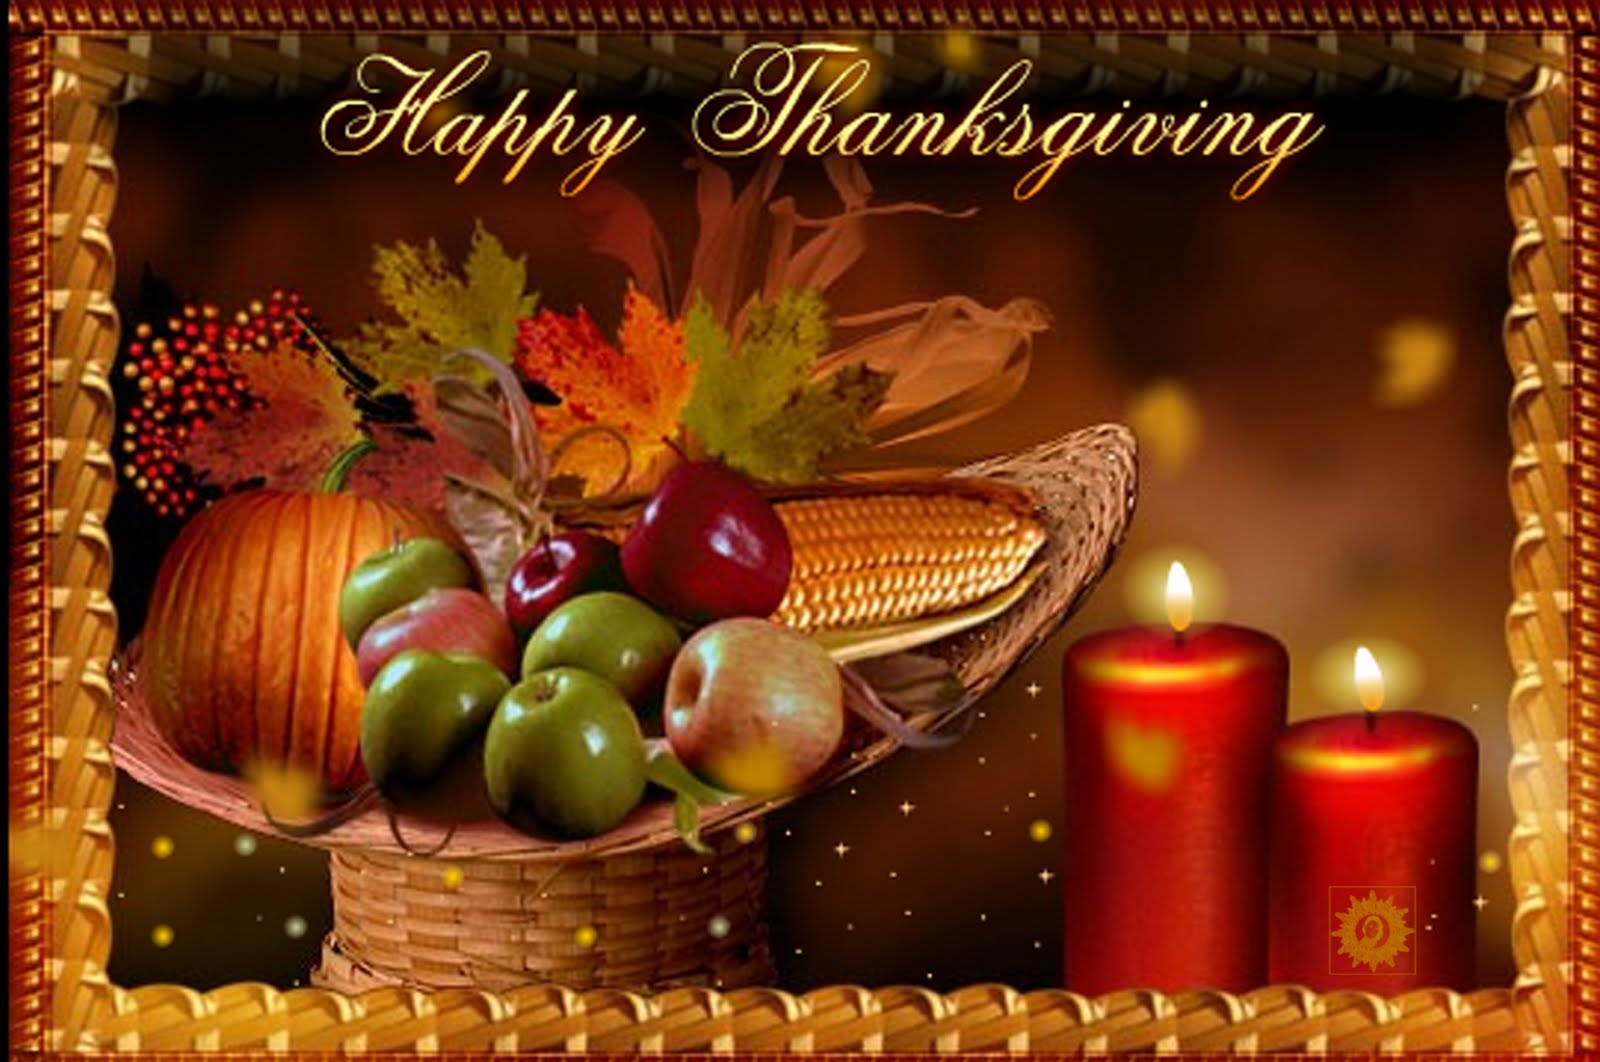 We wish you a very happy Thanksgiving on behalf of the Olivet New ...